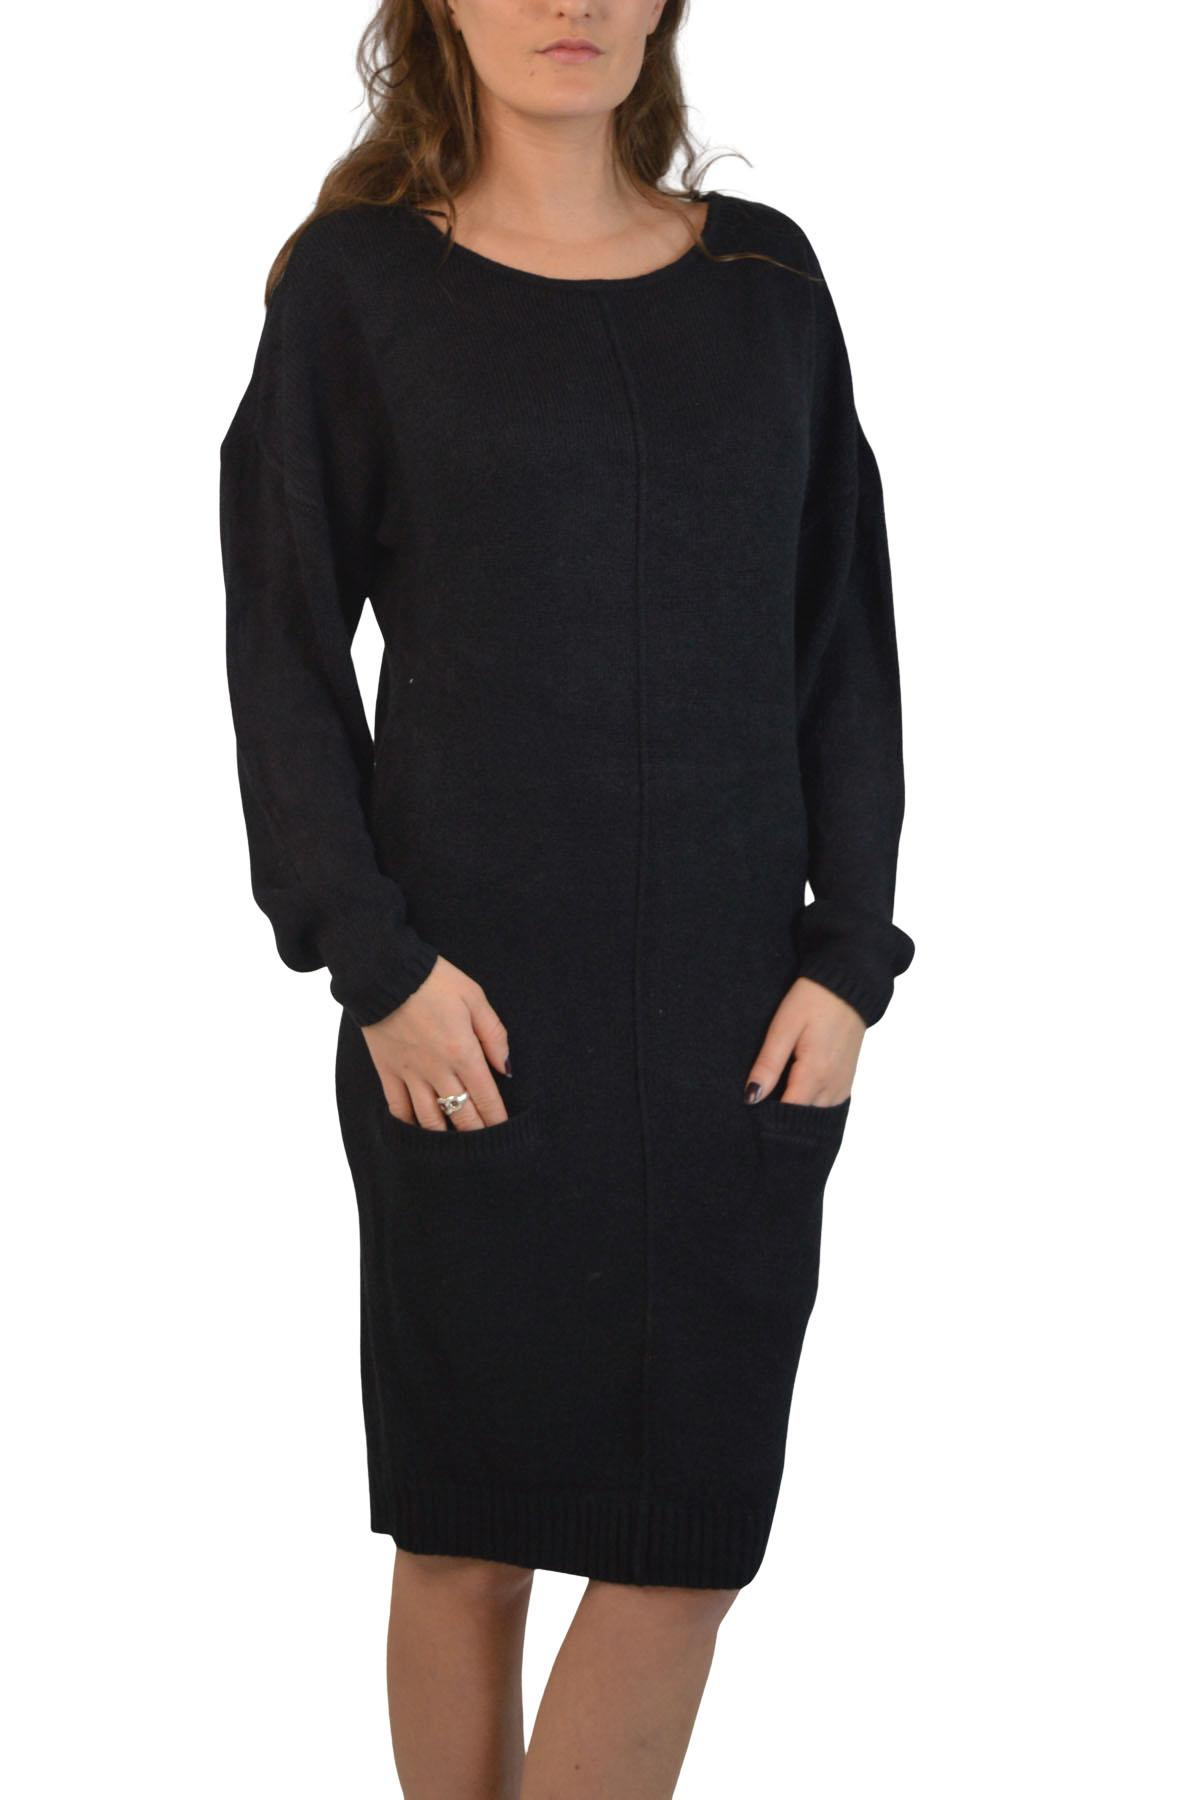 Womens-Soft-Long-Jumper-Dress-Round-Neck-Front-Pockets-Lilac-Black-Pink thumbnail 7